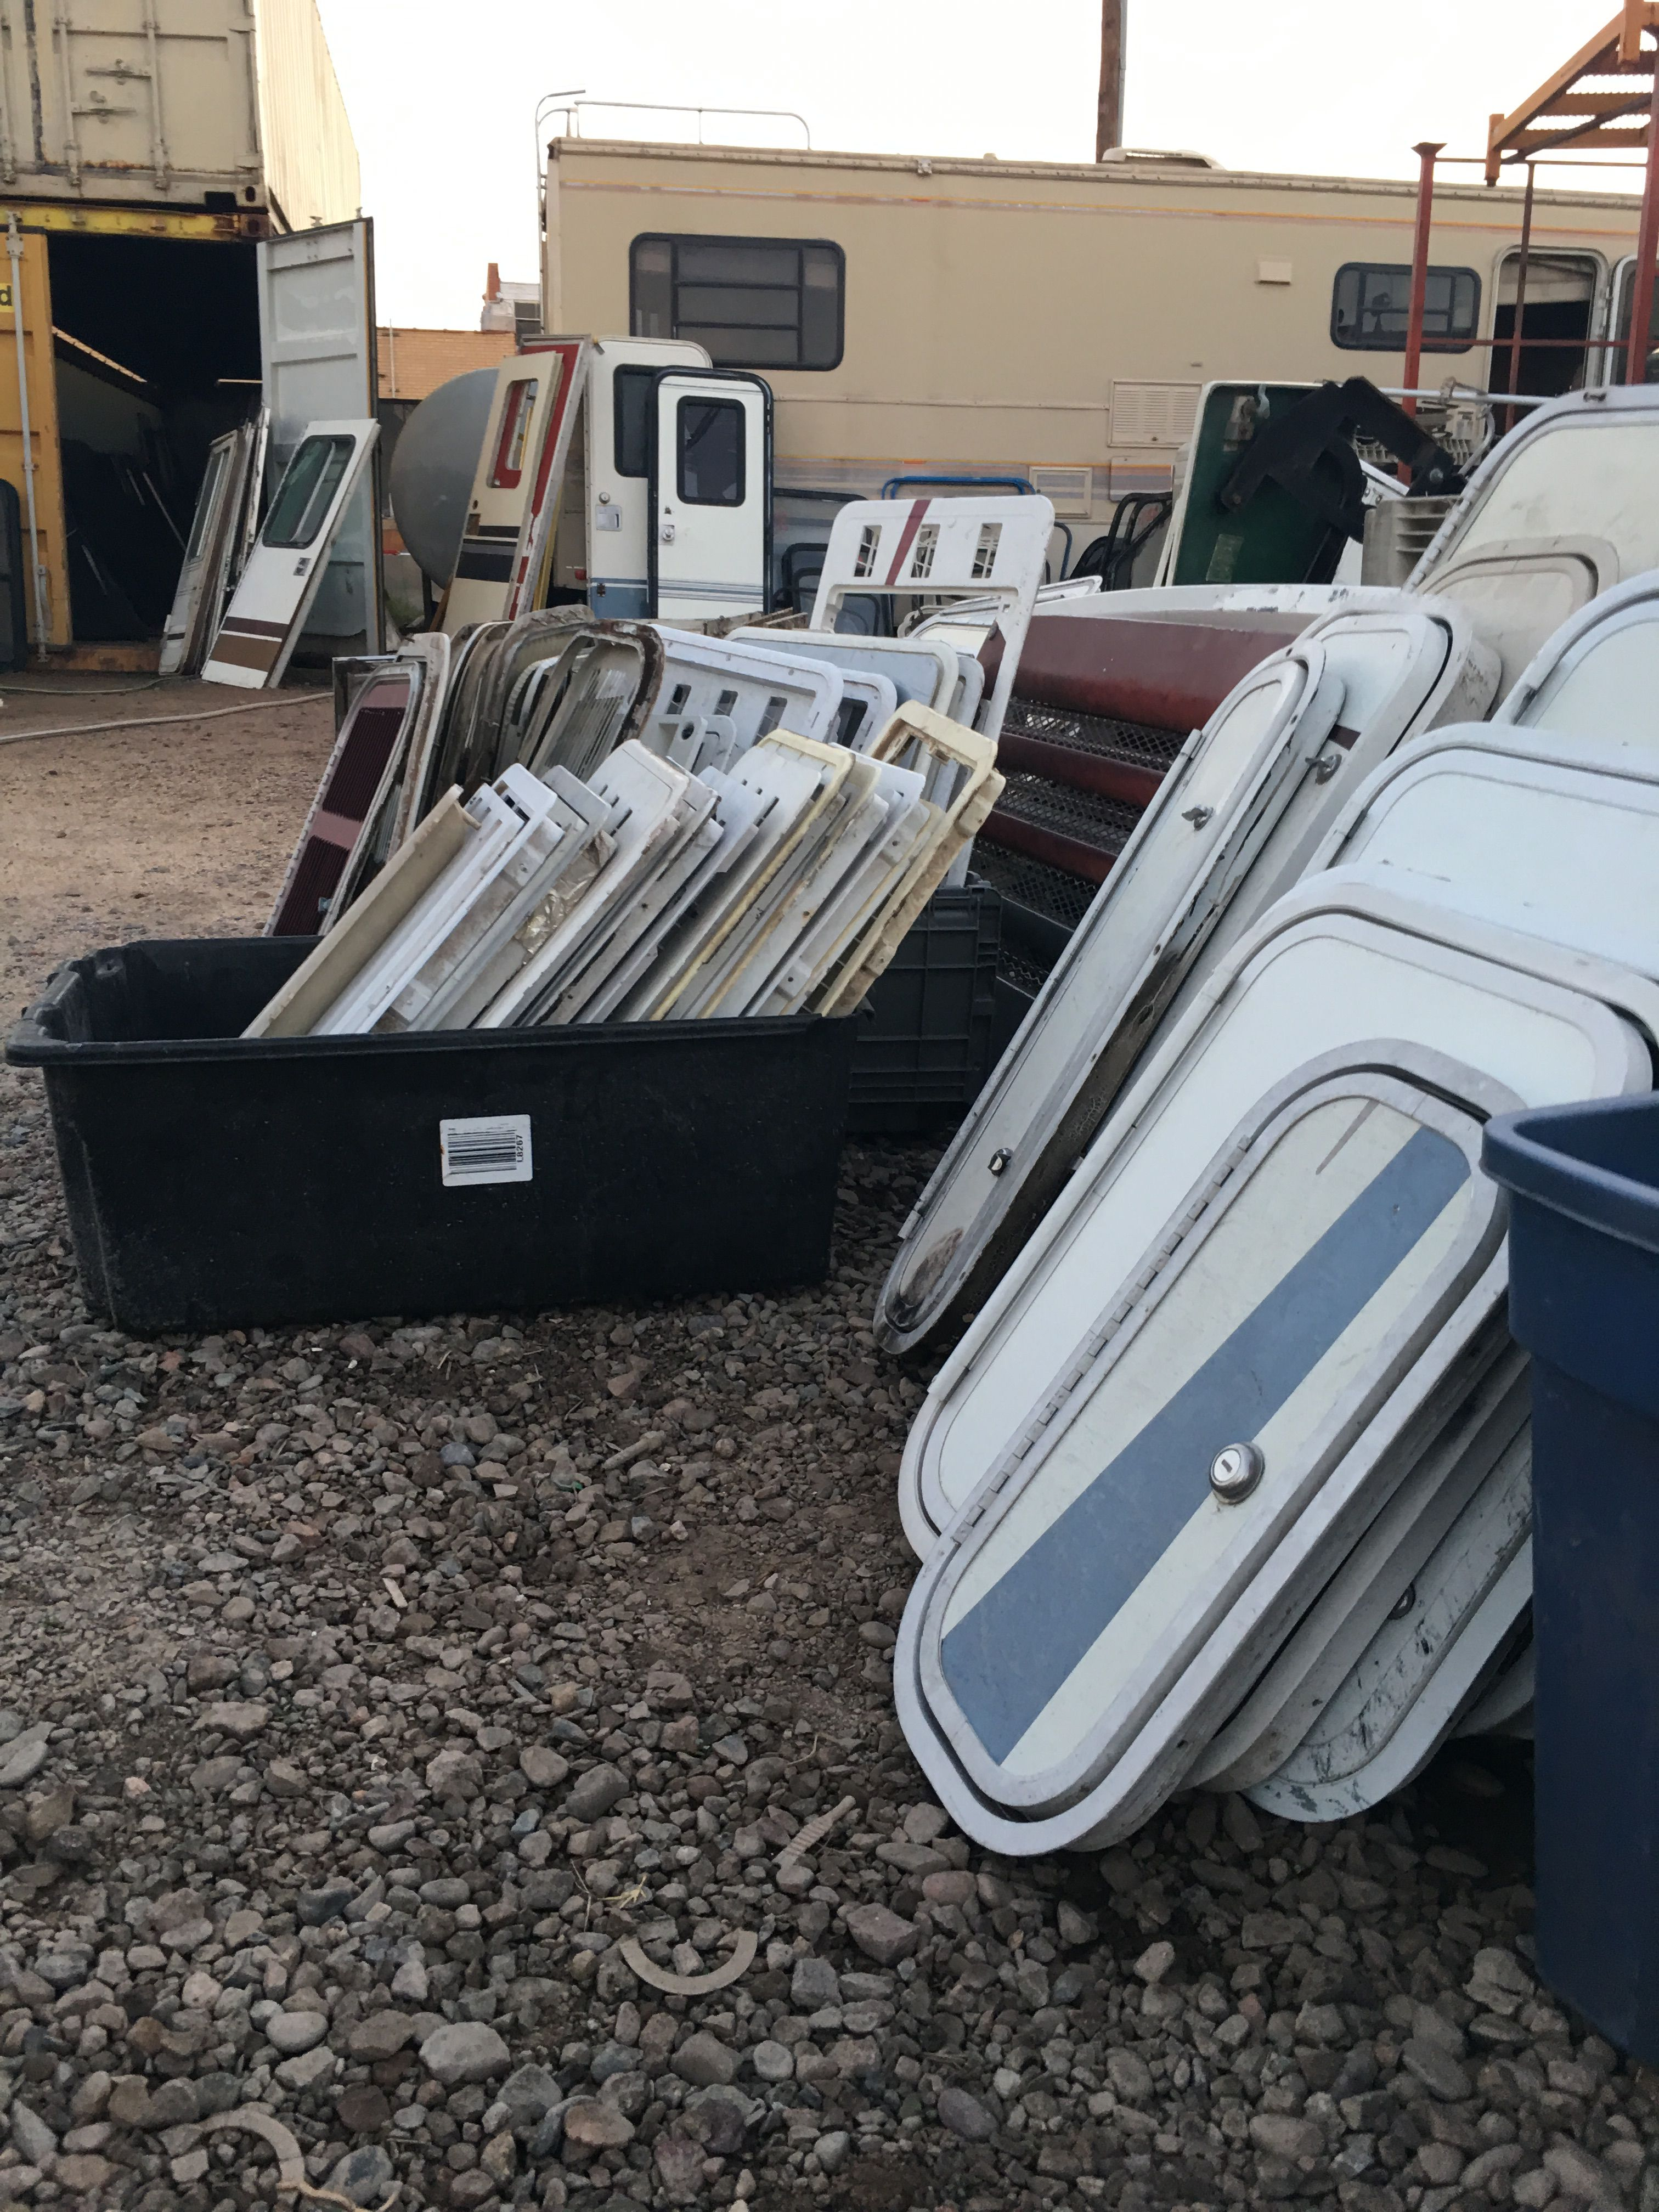 REPLACEMENT RV COMPARTMENT DOORS! | Salvage RV Parts into something